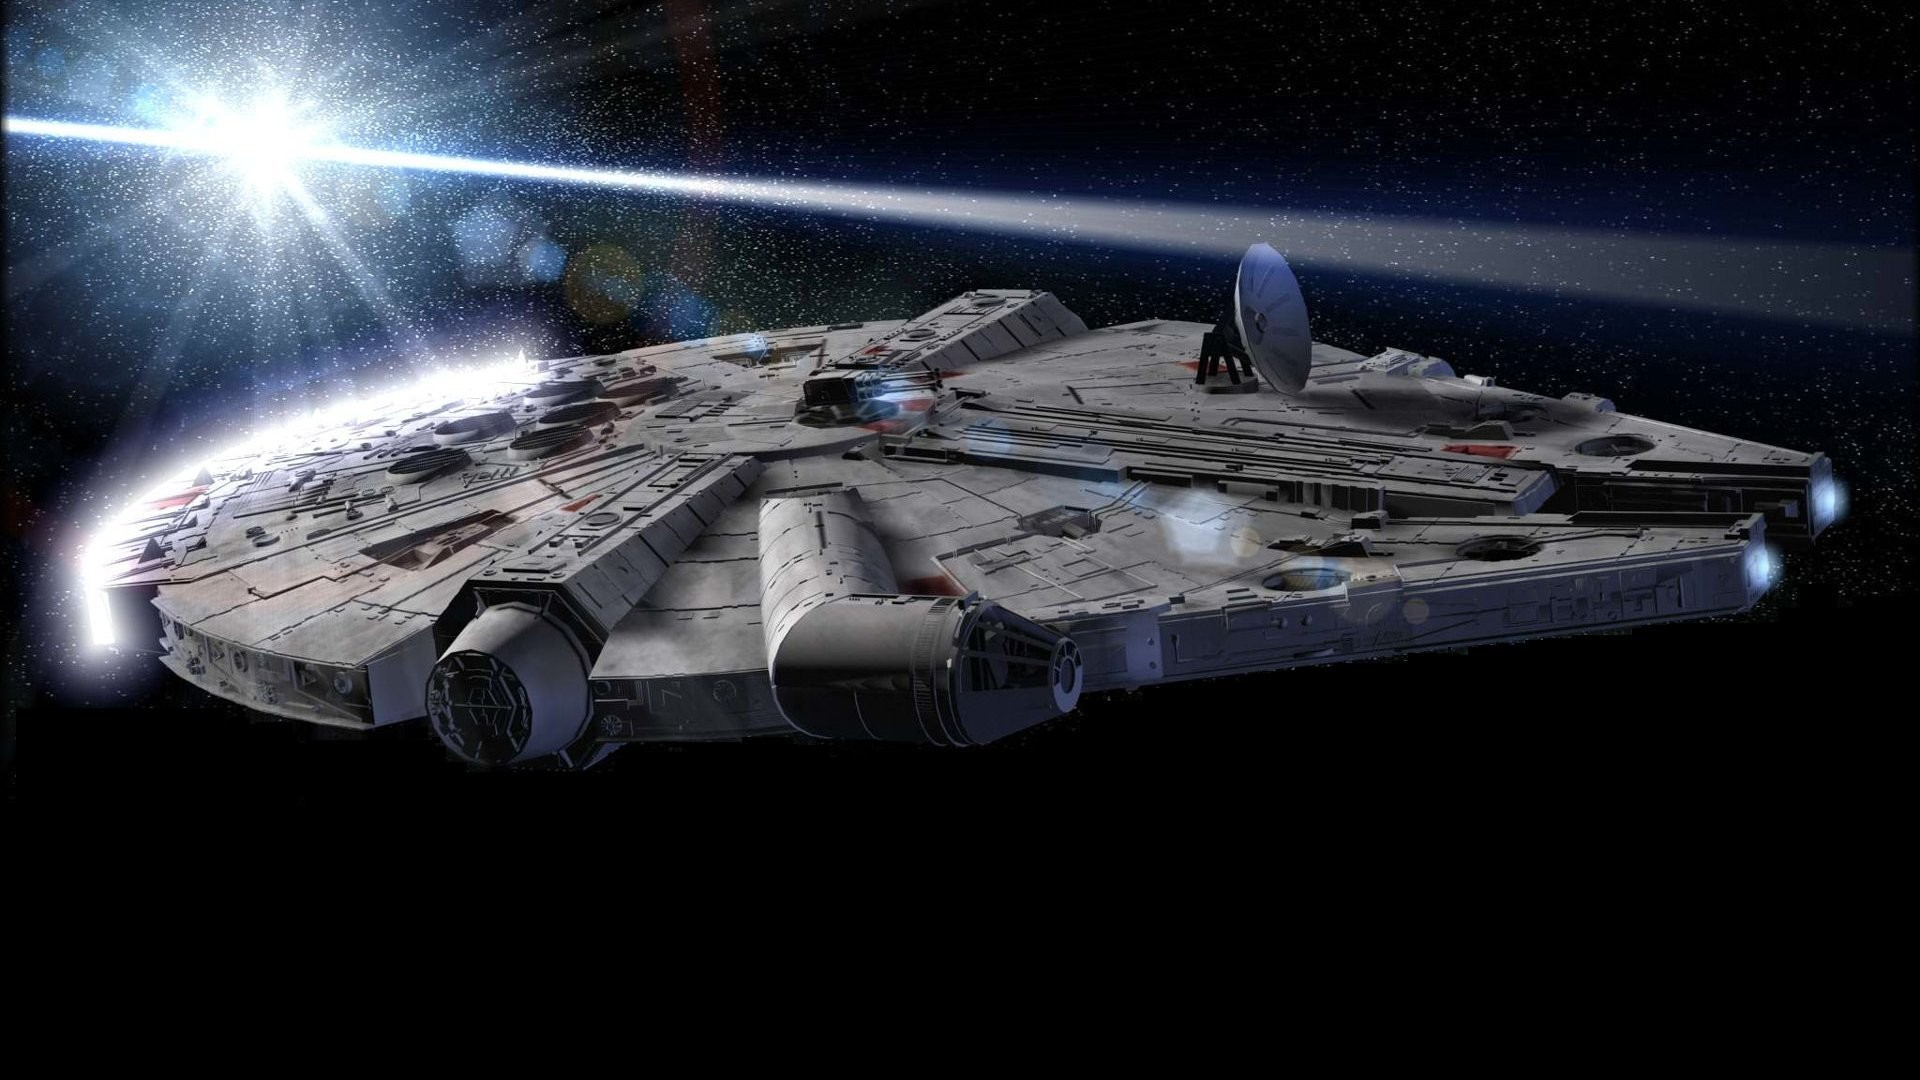 1920x1080 STAR WARS X -WING spaceship futuristic space sci-fi xwing wallpaper |   | 811209 | WallpaperUP